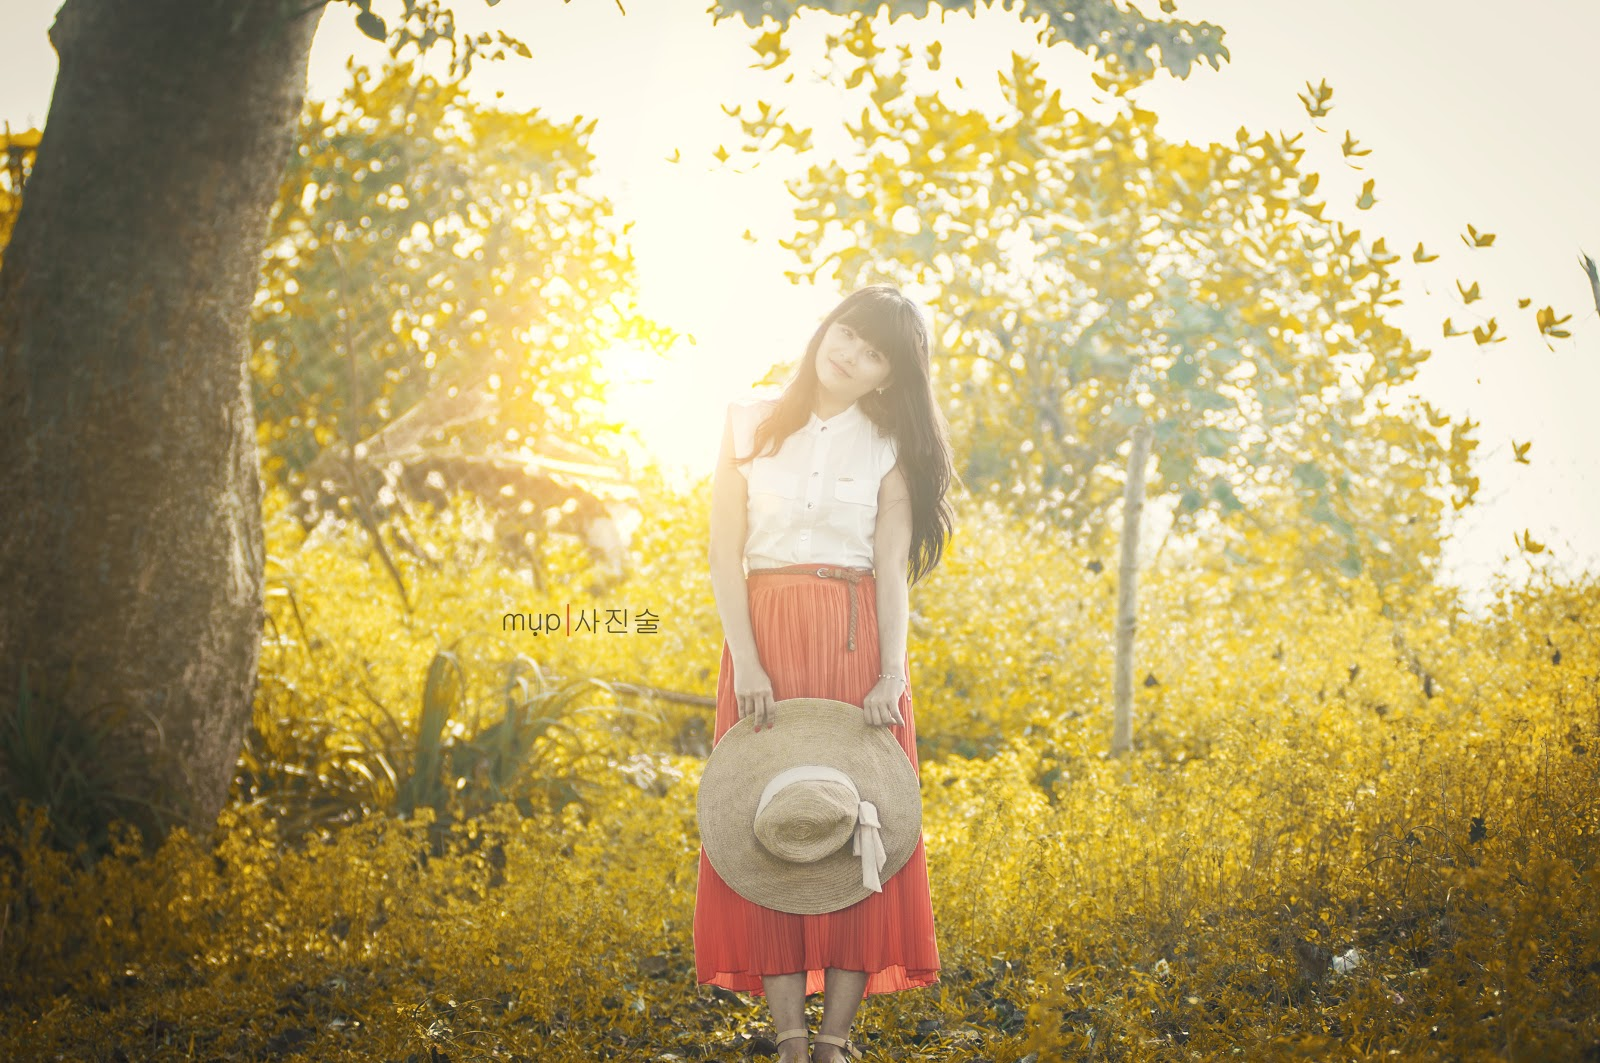 Vietnamese Beauty Girls by Mụp Photography (P3) 56 pics